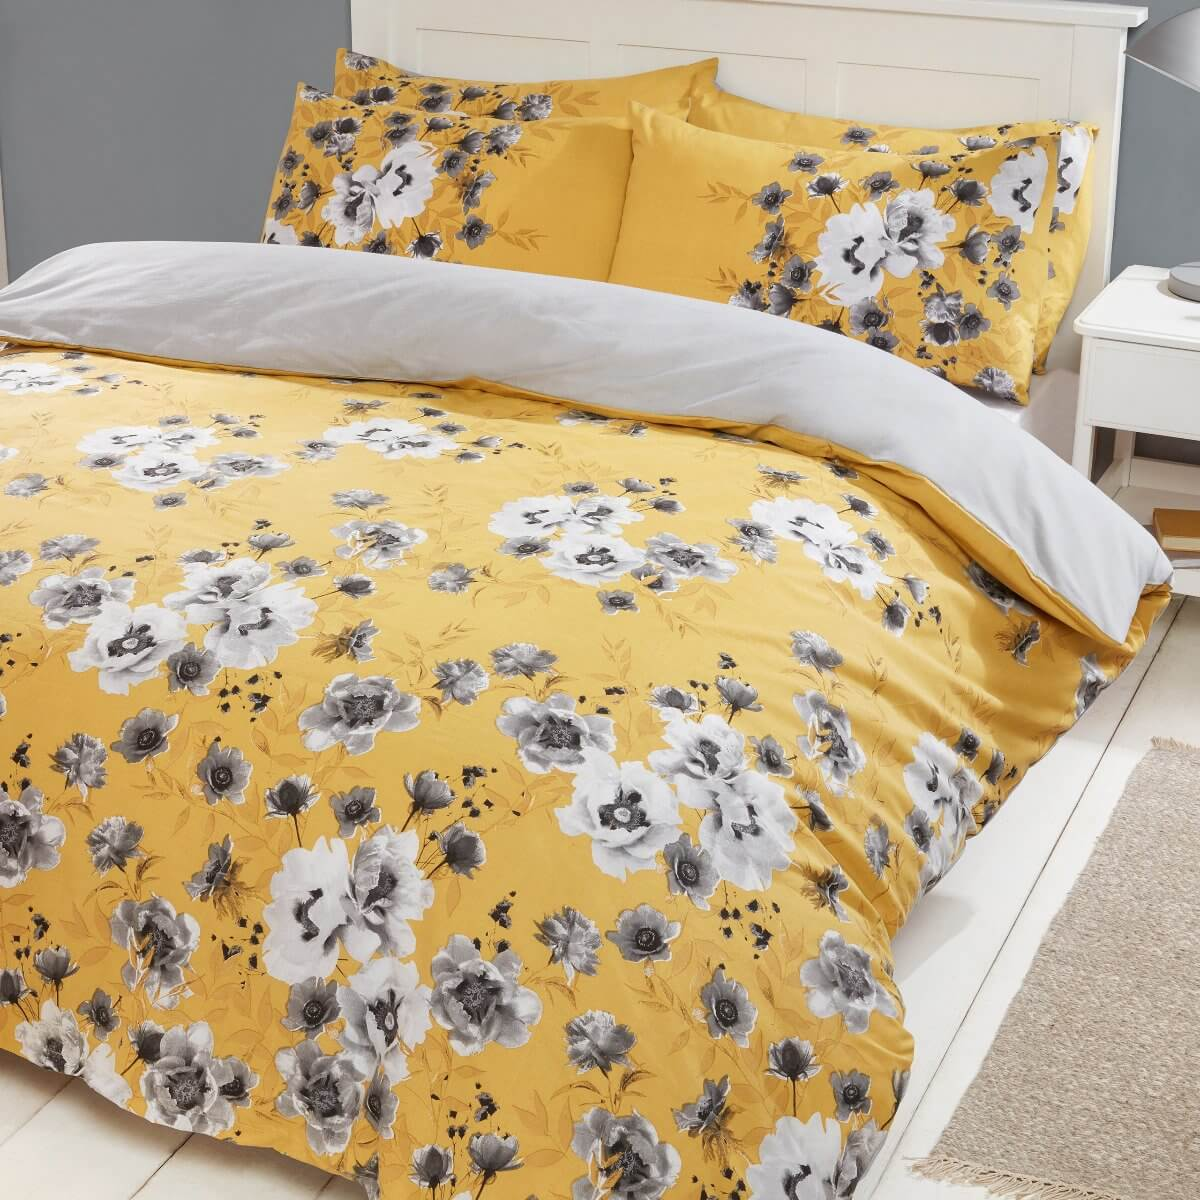 Photographic Floral Bedding - Reversible Duvet Cover and Pillowcase Set